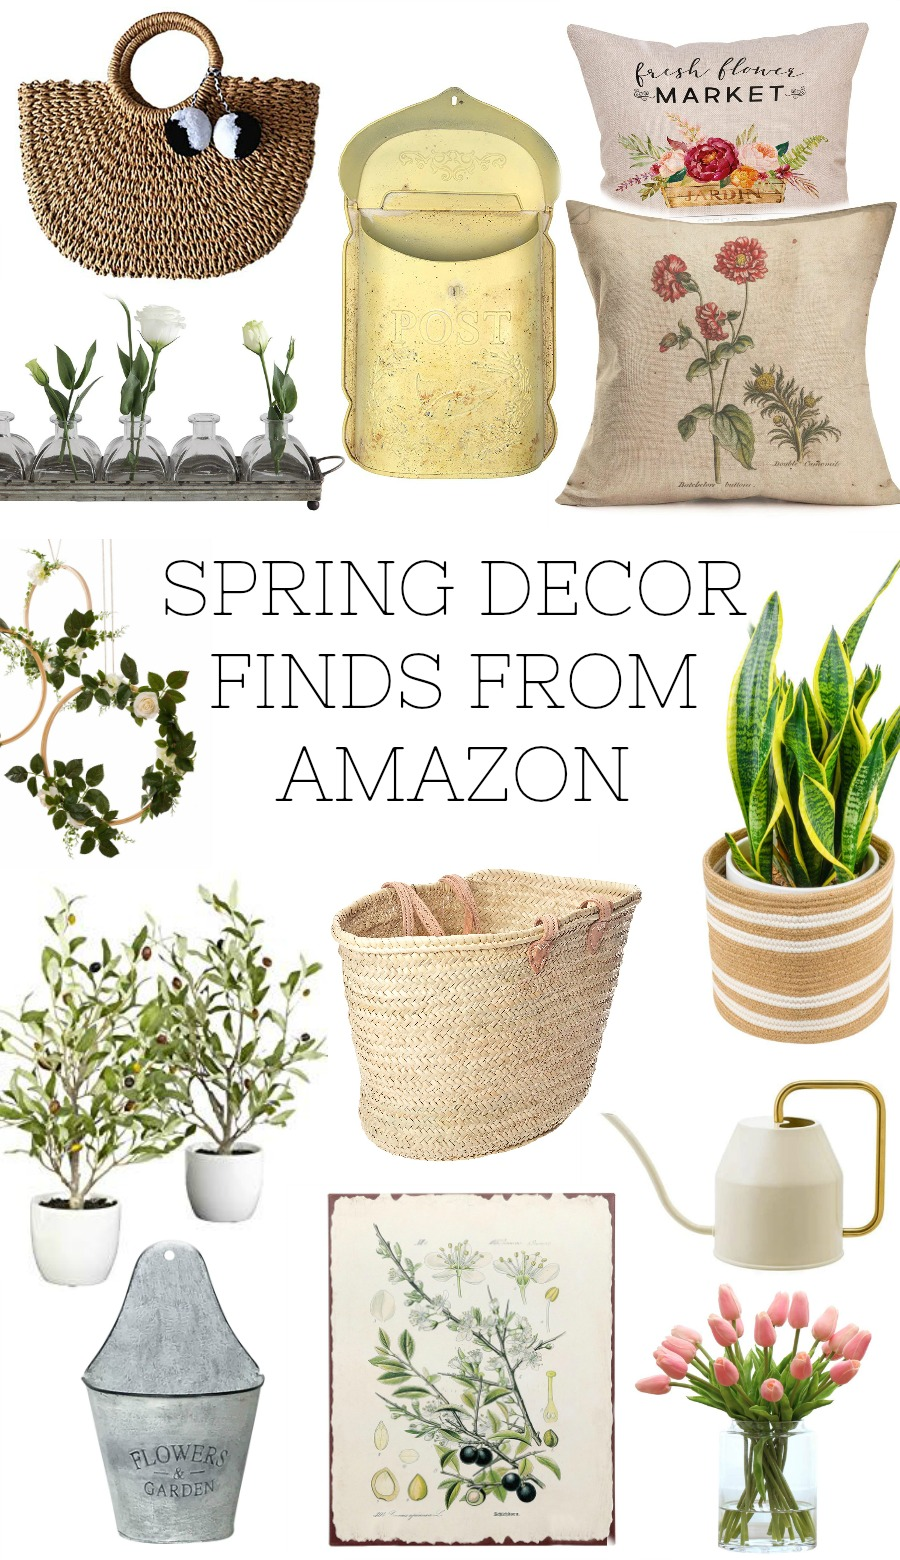 Spring decor from Amazon. Affordable spring home decor finds all from Amazon.